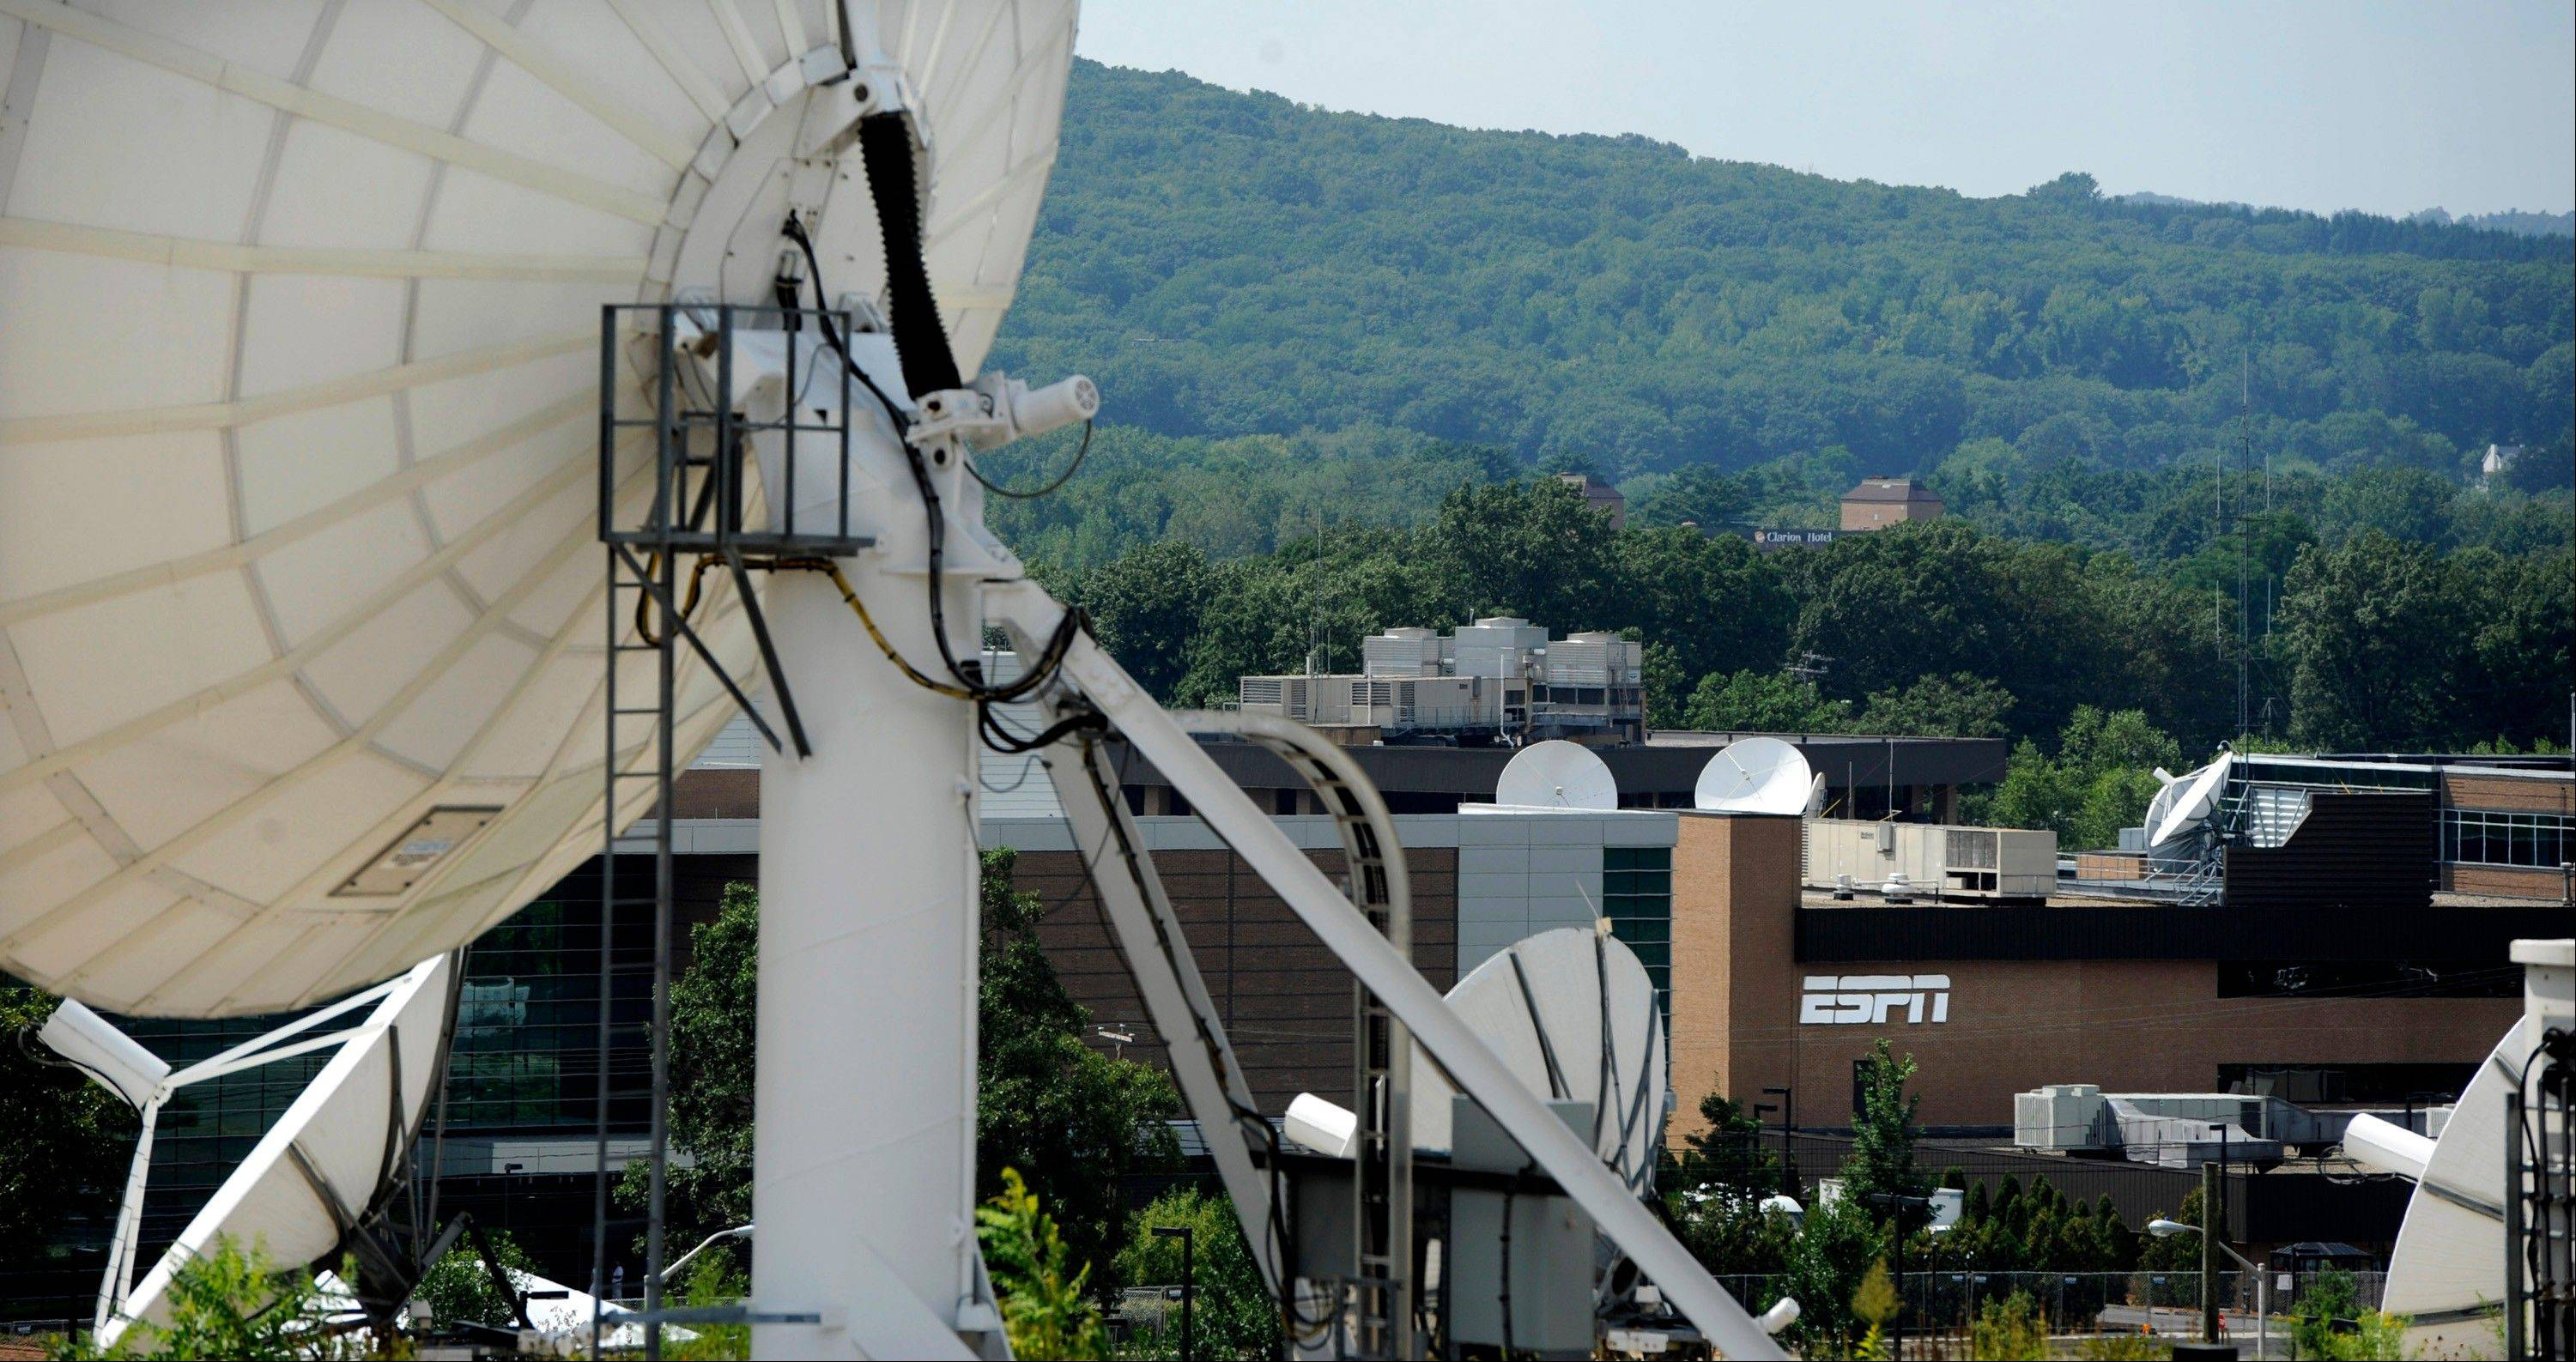 Associated Press/Aug. 2, 2011 Satellite dishes dot the campus of ESPN in Bristol, Conn.